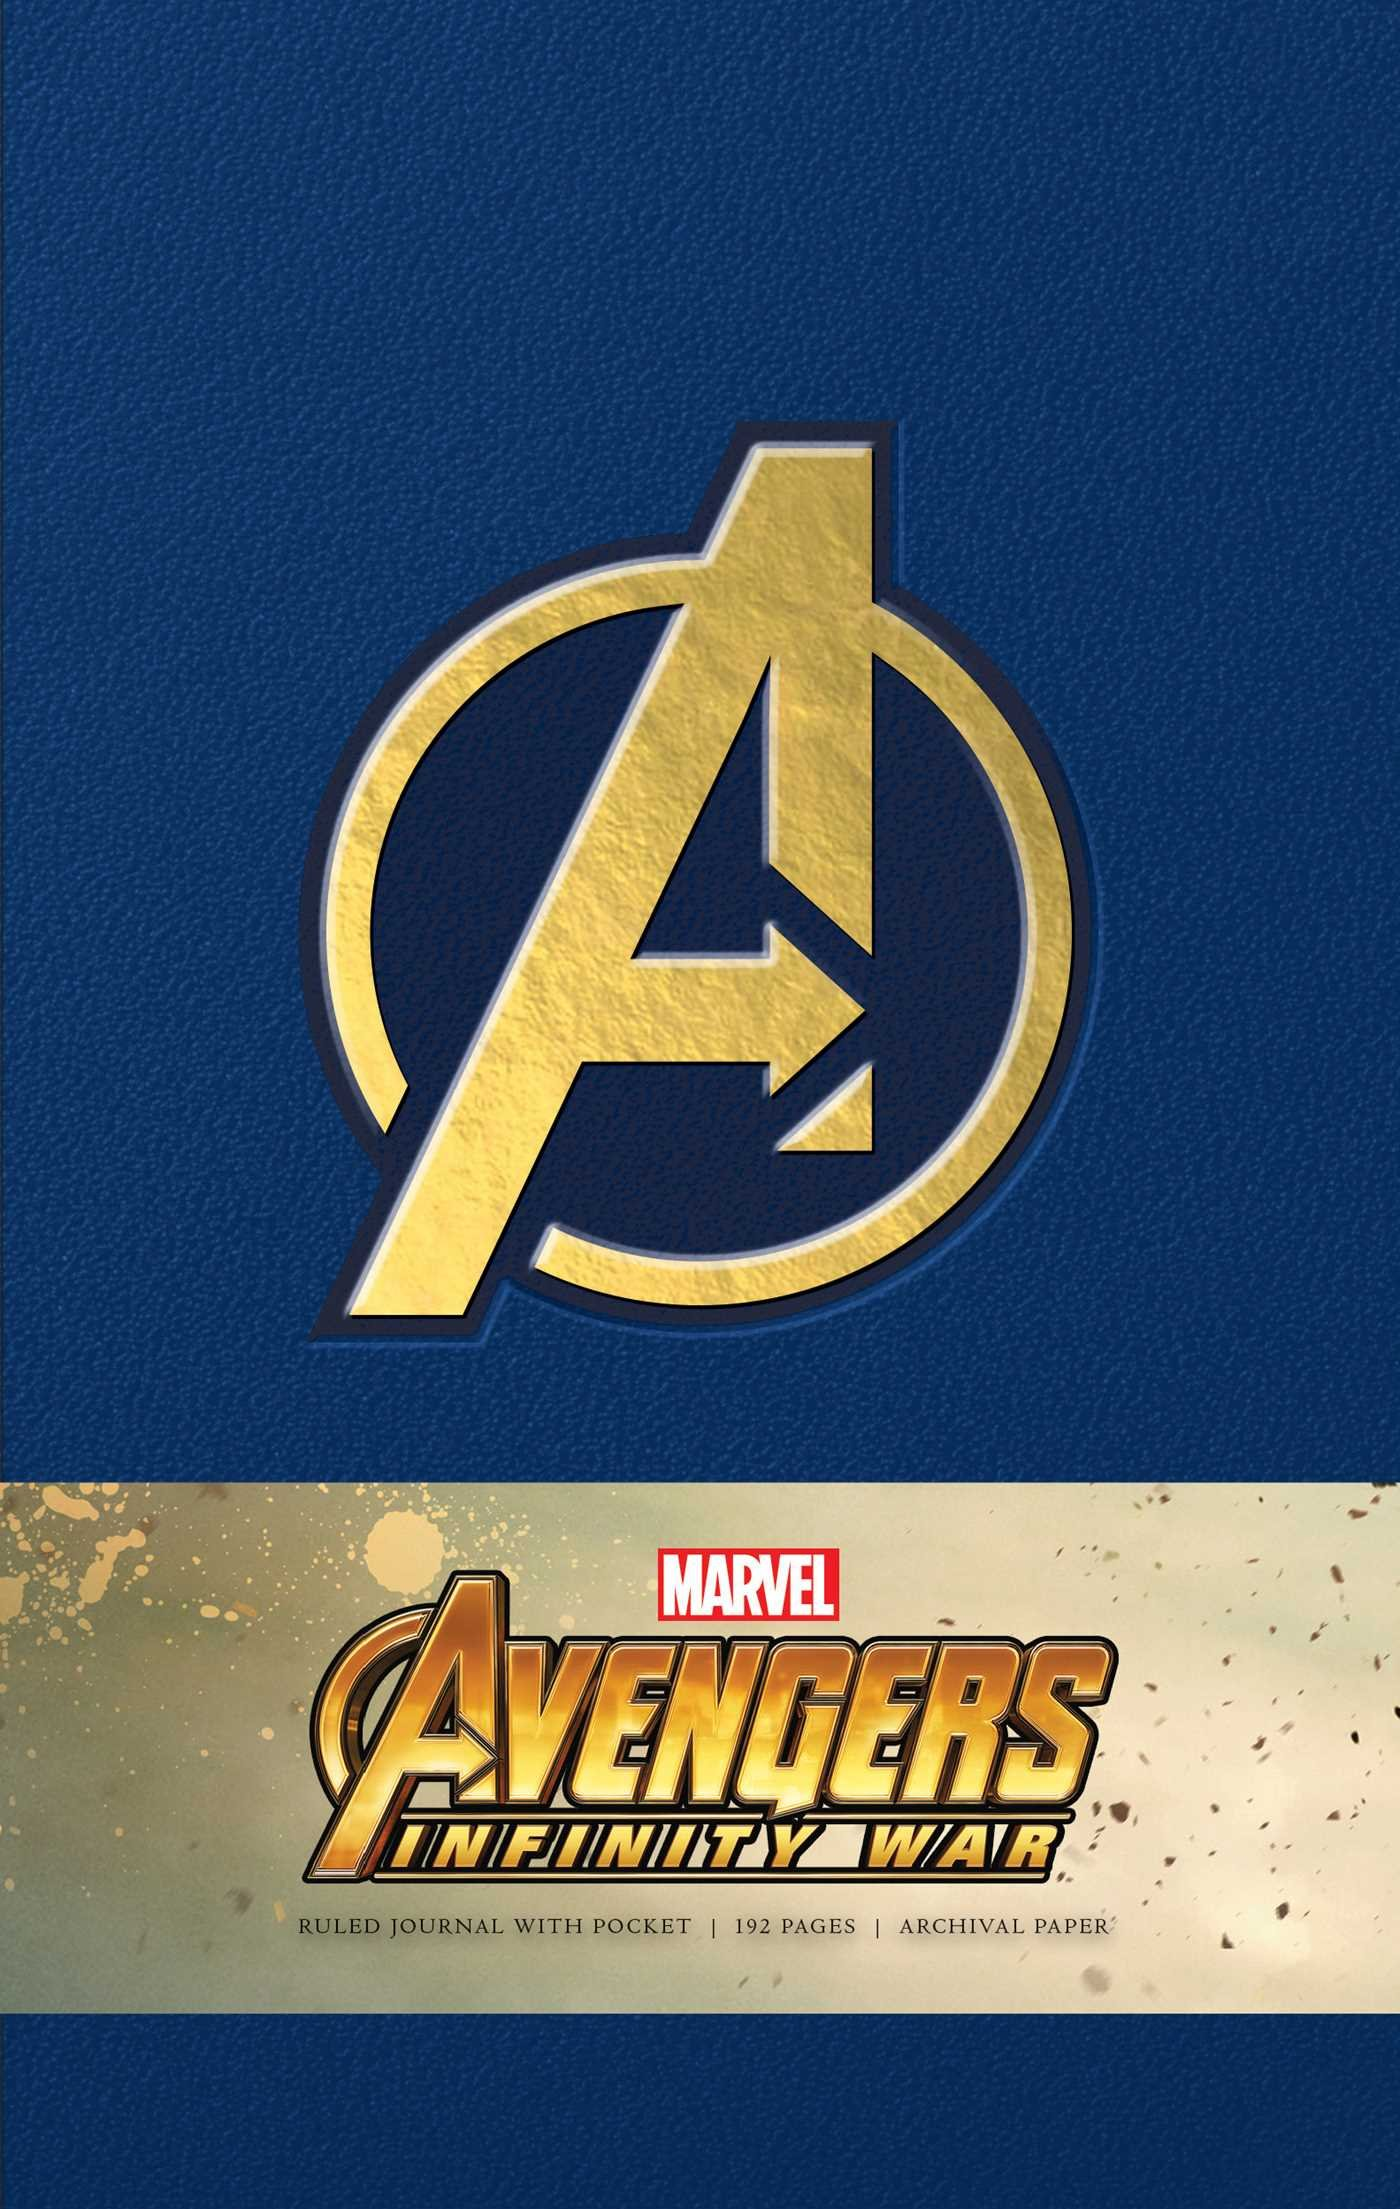 Avengers Designed Notebook Journal, Avengers, Infinity War, Marvel Universe, MCU, Iron Man, Thor, Thanos, cosplay gear, action figures, Marvel items, Hulk, Spider Man, Captain America, Black Widow, Doctor Strange,